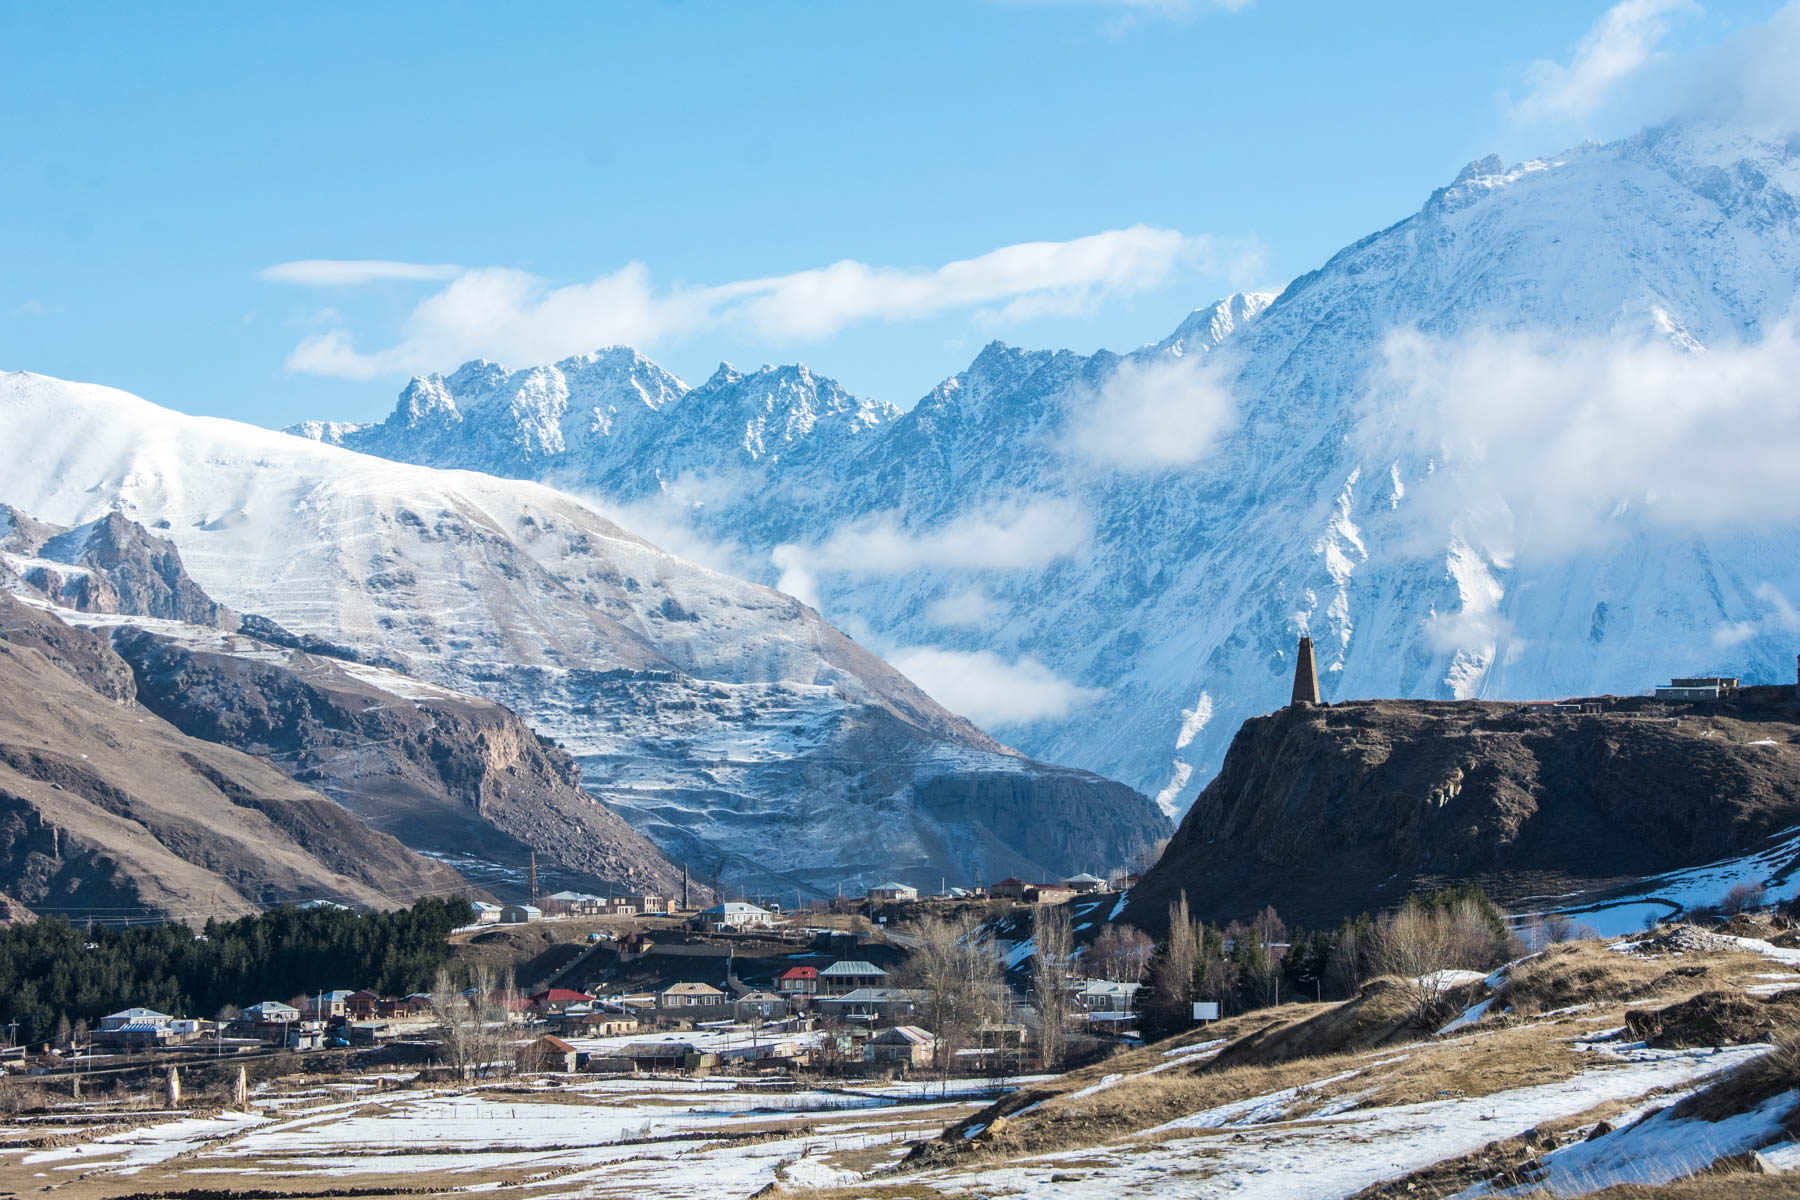 Ways to exercise during long-term travel no matter where you are - Snowy mountains in Kazbegi, Georgia - Lost With Purpose